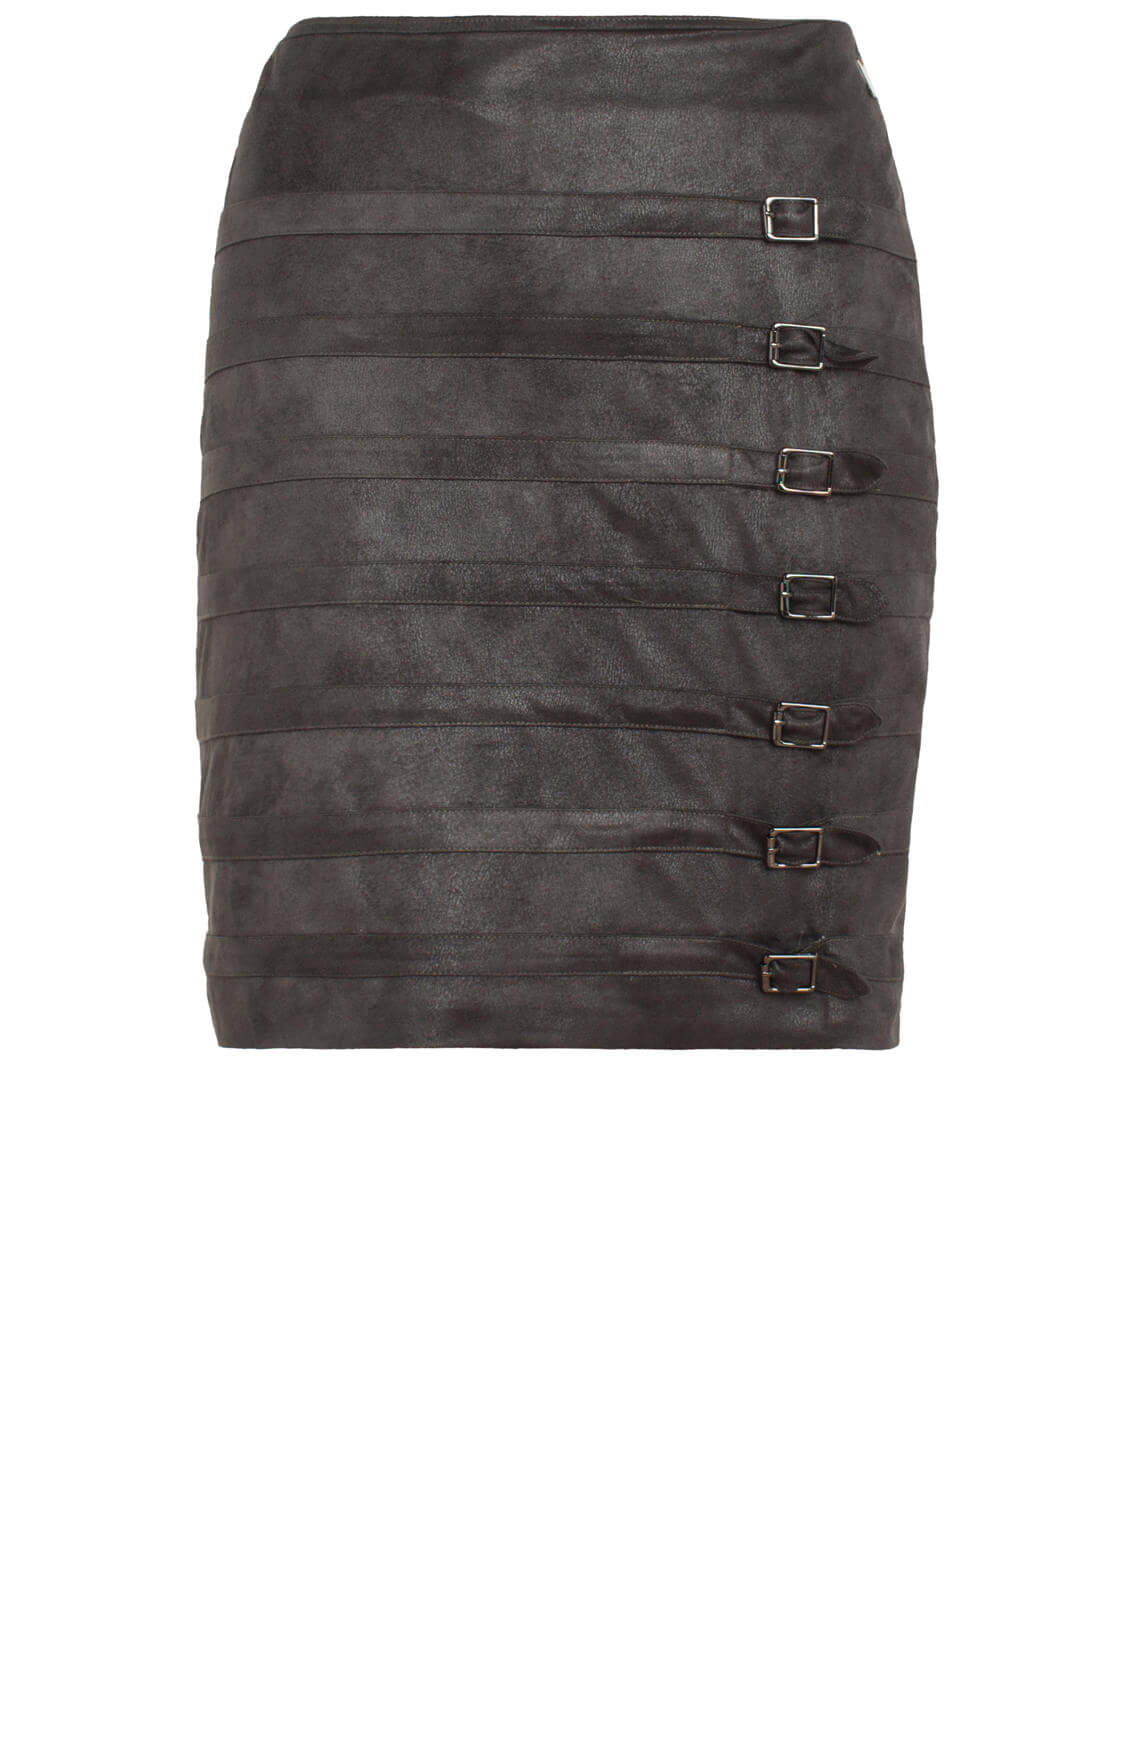 Anna Dames Fake leather rok met gespen groen